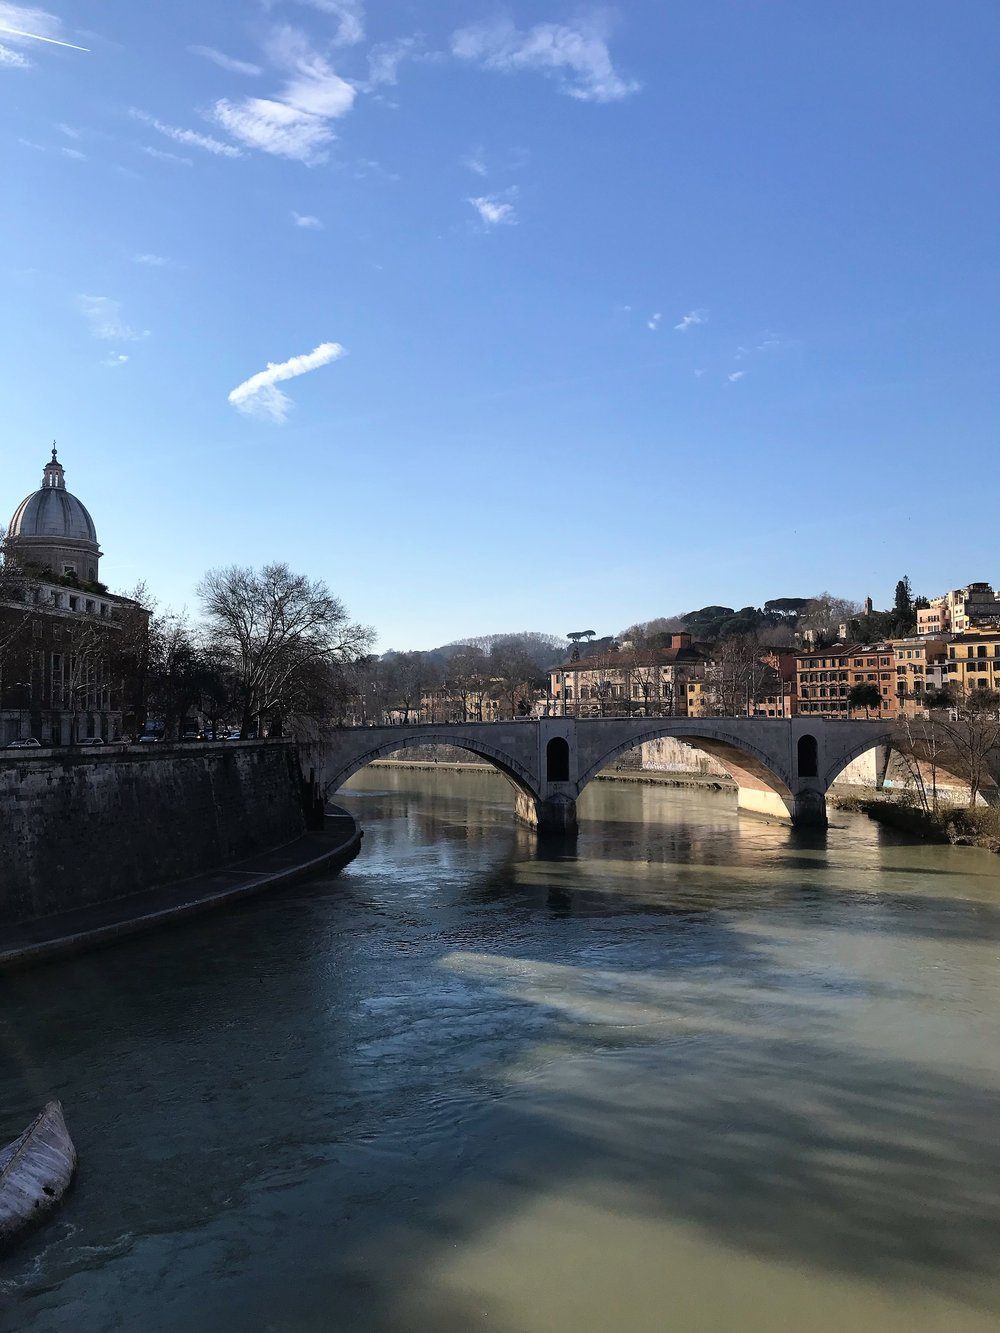 Our morning walk across the Tiber River